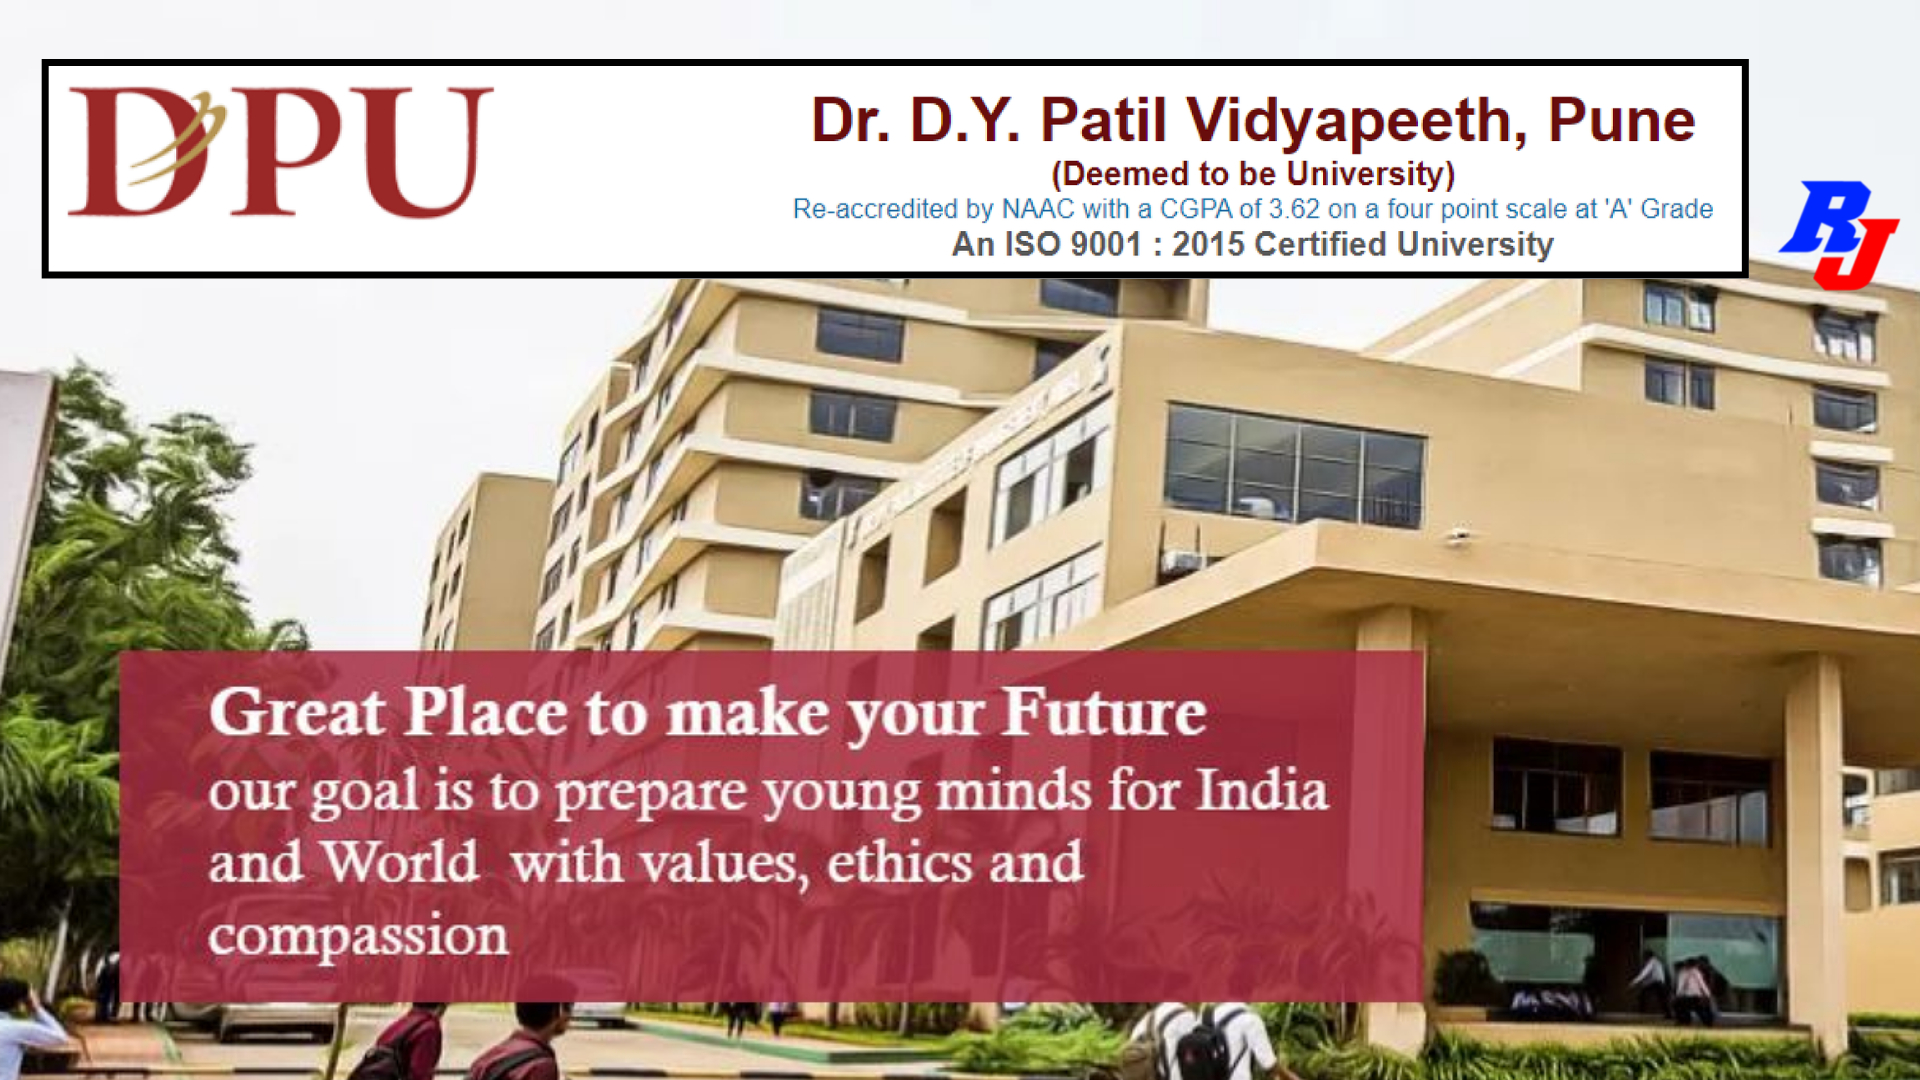 Faculty Positions in DPU, D Y Patil University, Pune, Maharastra, India